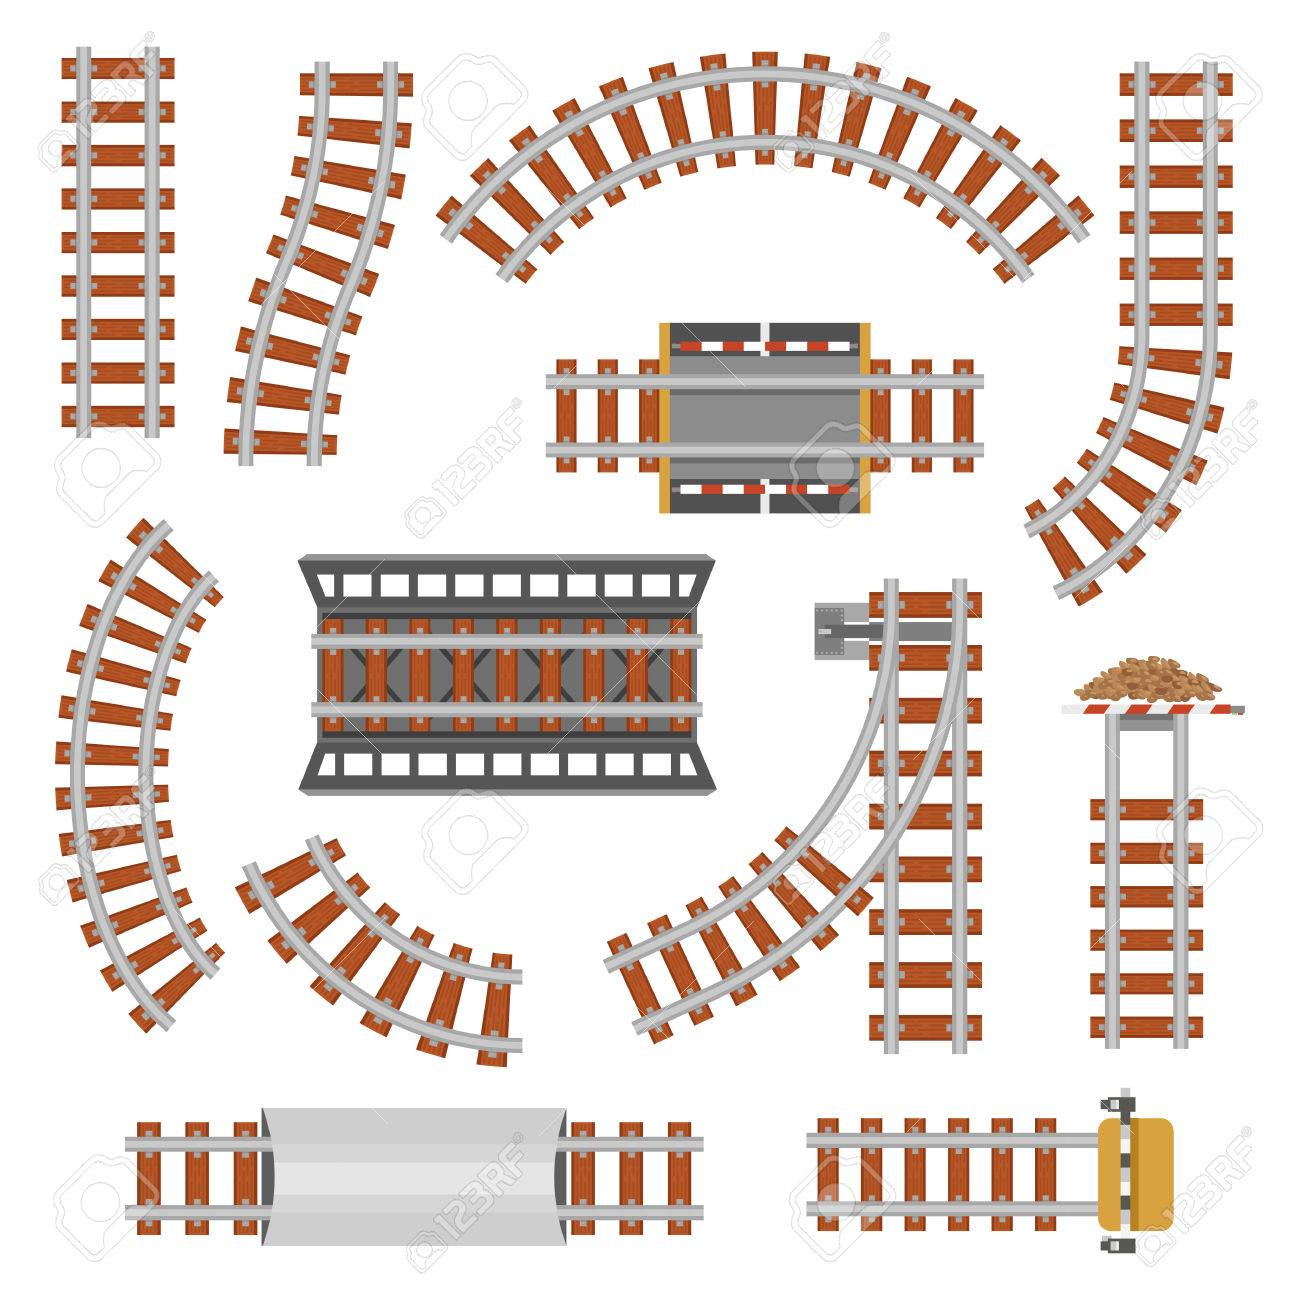 hight resolution of rail or railroad railway top view train transportation track made of steel and wood